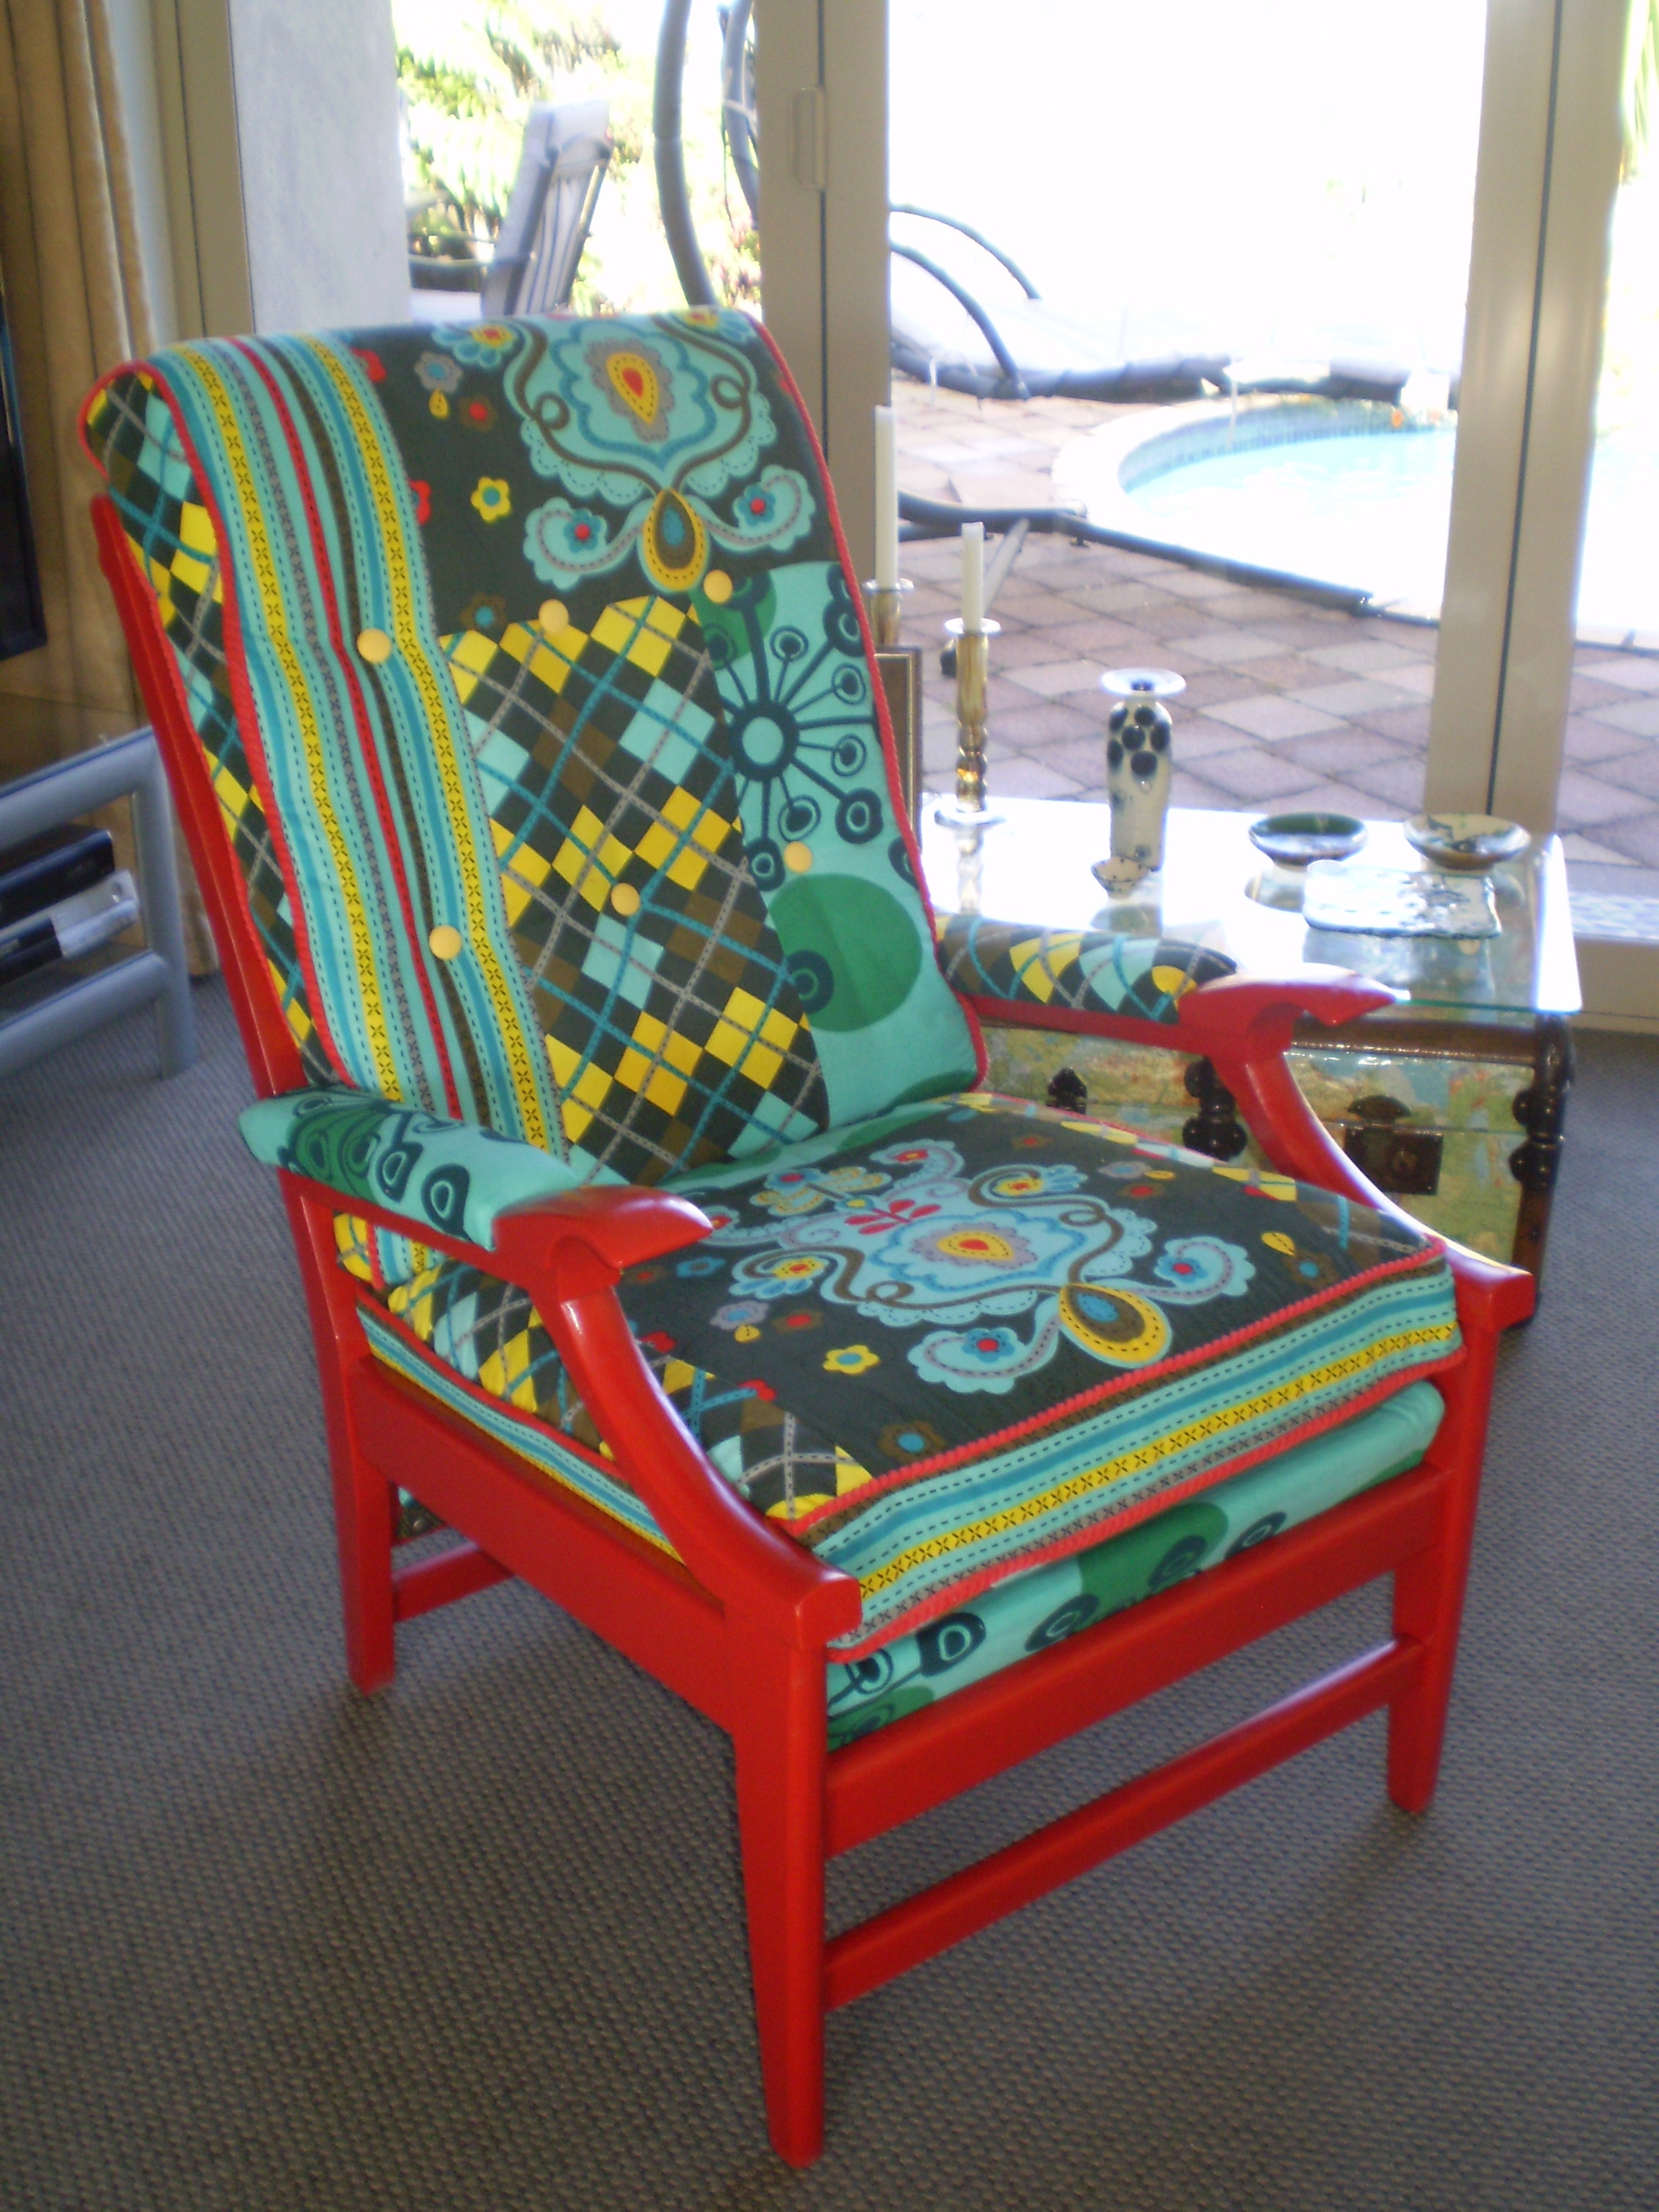 Innovative Common Cintique Chair Covers With Regard To 1960s Cintique Chair Patch Work Material And Painted Cherry Red (View 9 of 15)